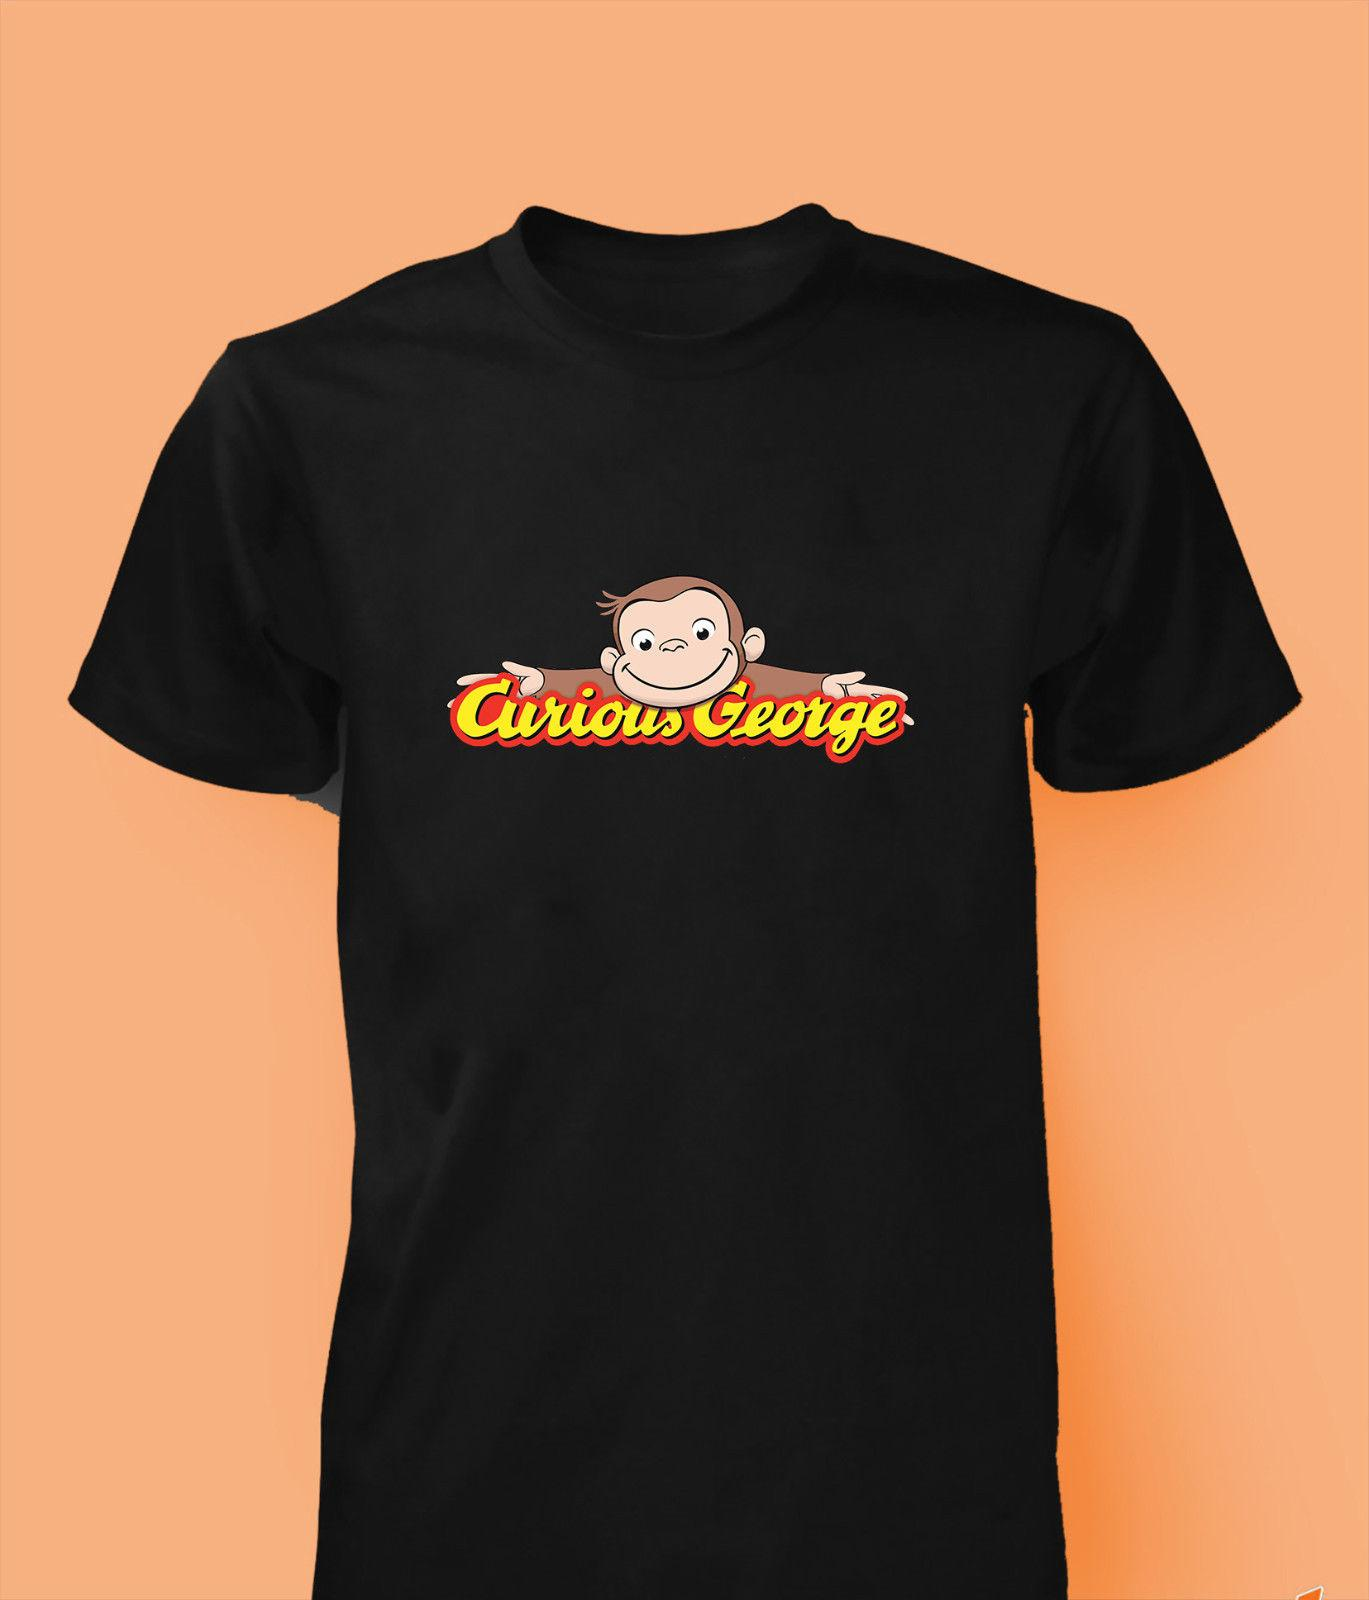 3148666ba2dea Curious George T Shirt Cartoon Game Youtube Monkey Kids Men Women Top Funny  Unisex Casual Tshirt Top Buy Shirt Designs Funny Clever T Shirts From ...